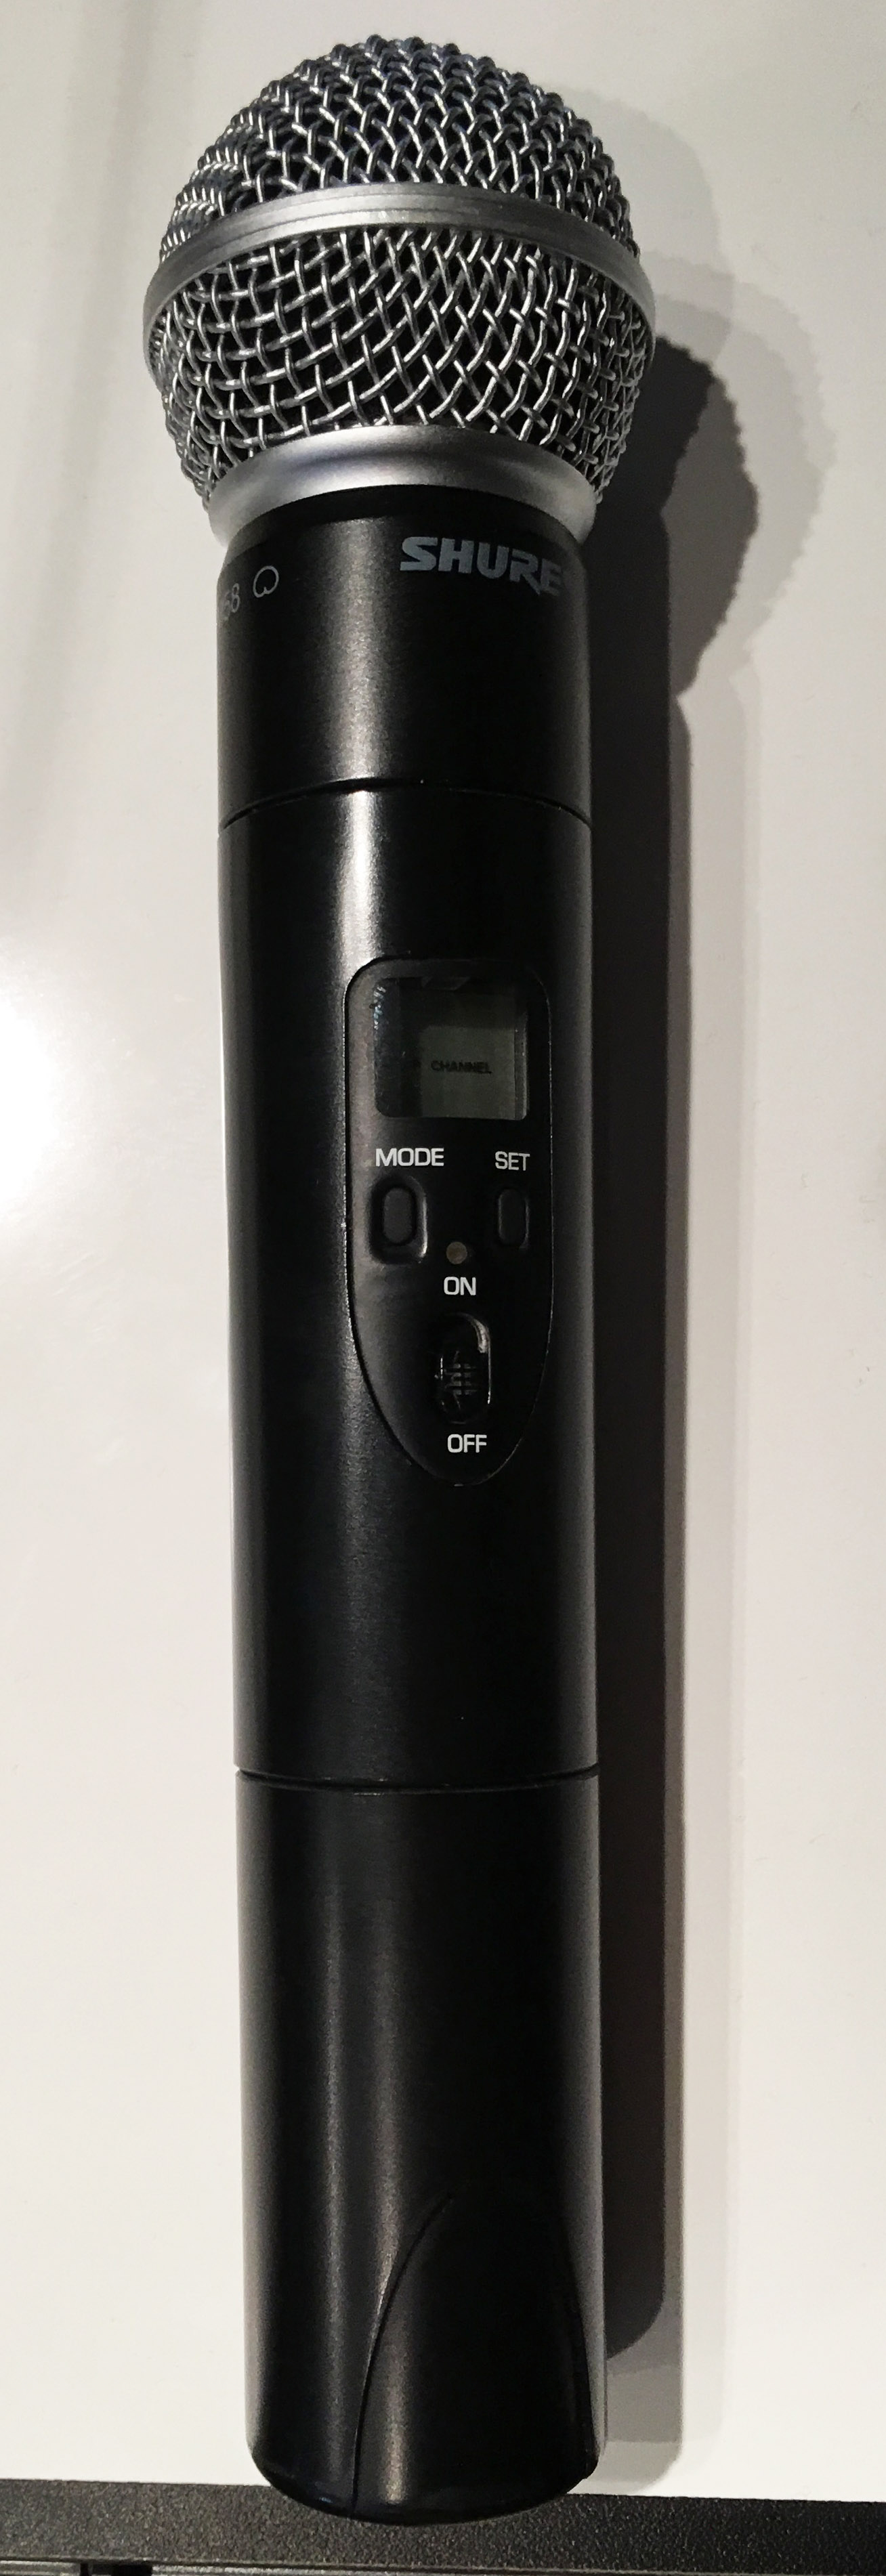 Image of a hand held microphone